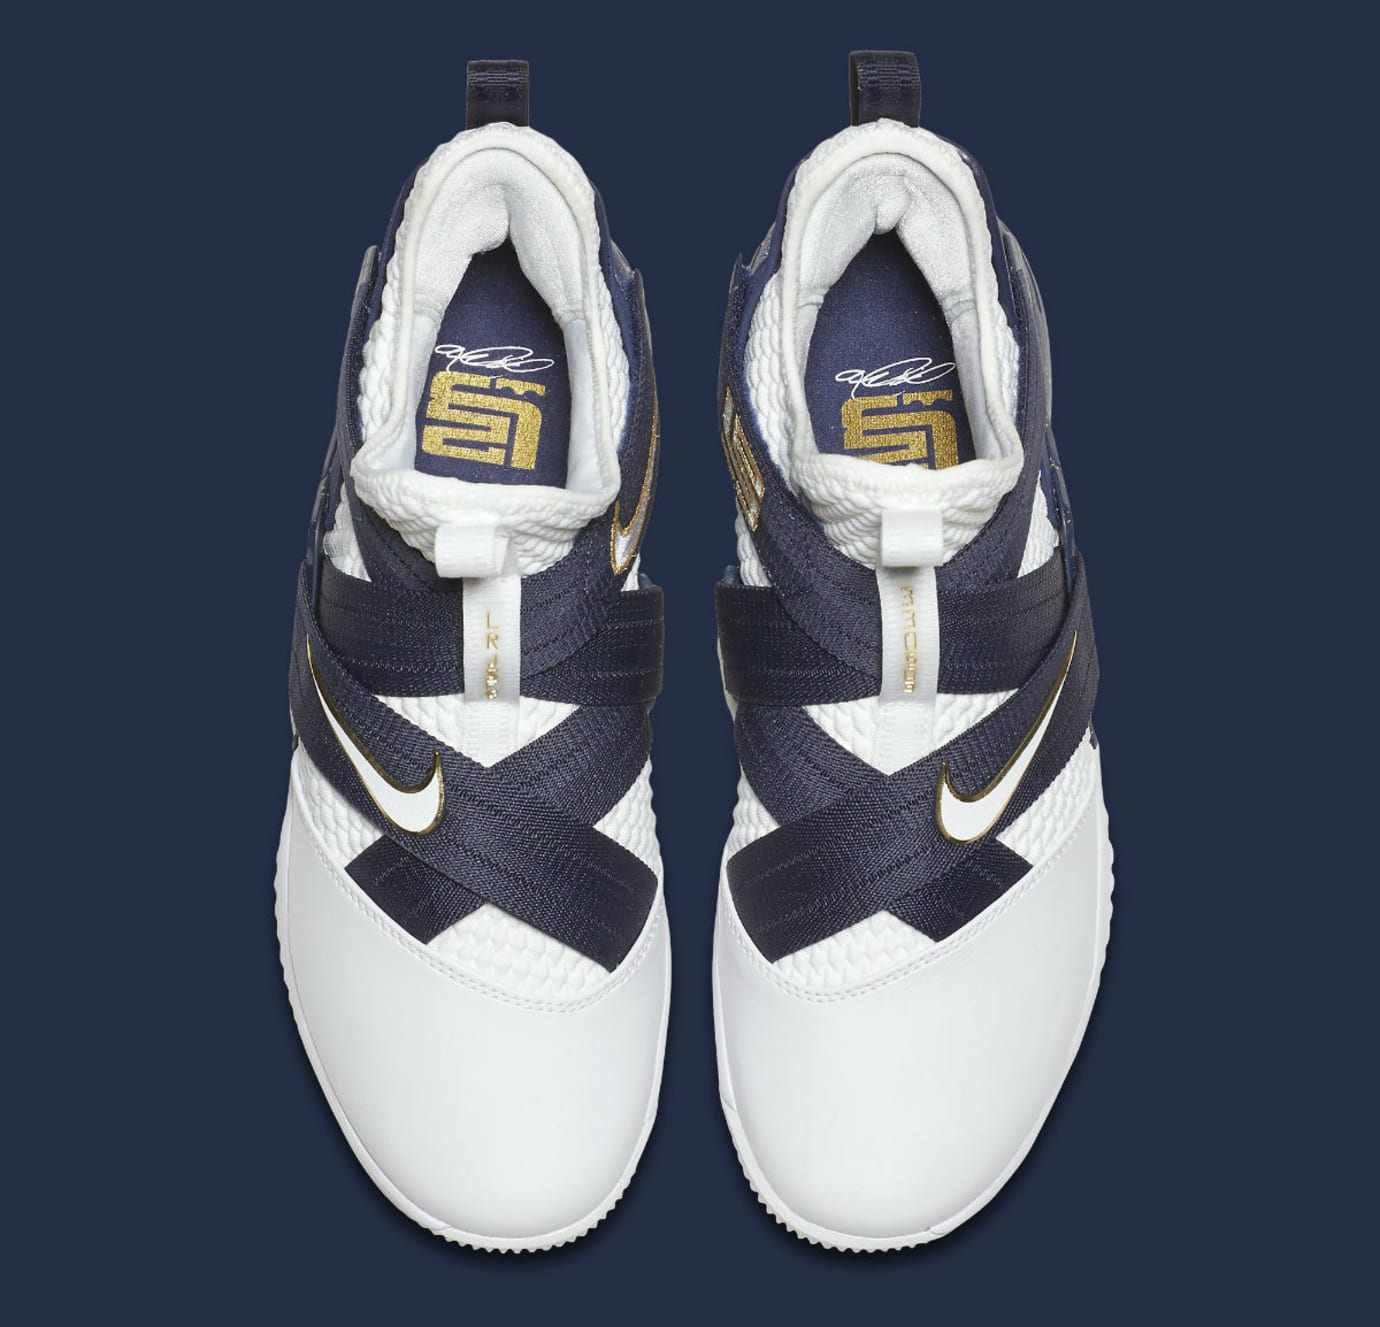 0f930dc546a Nike LeBron Soldier 12 XII Witness Navy Release Date AO4055-100 Top